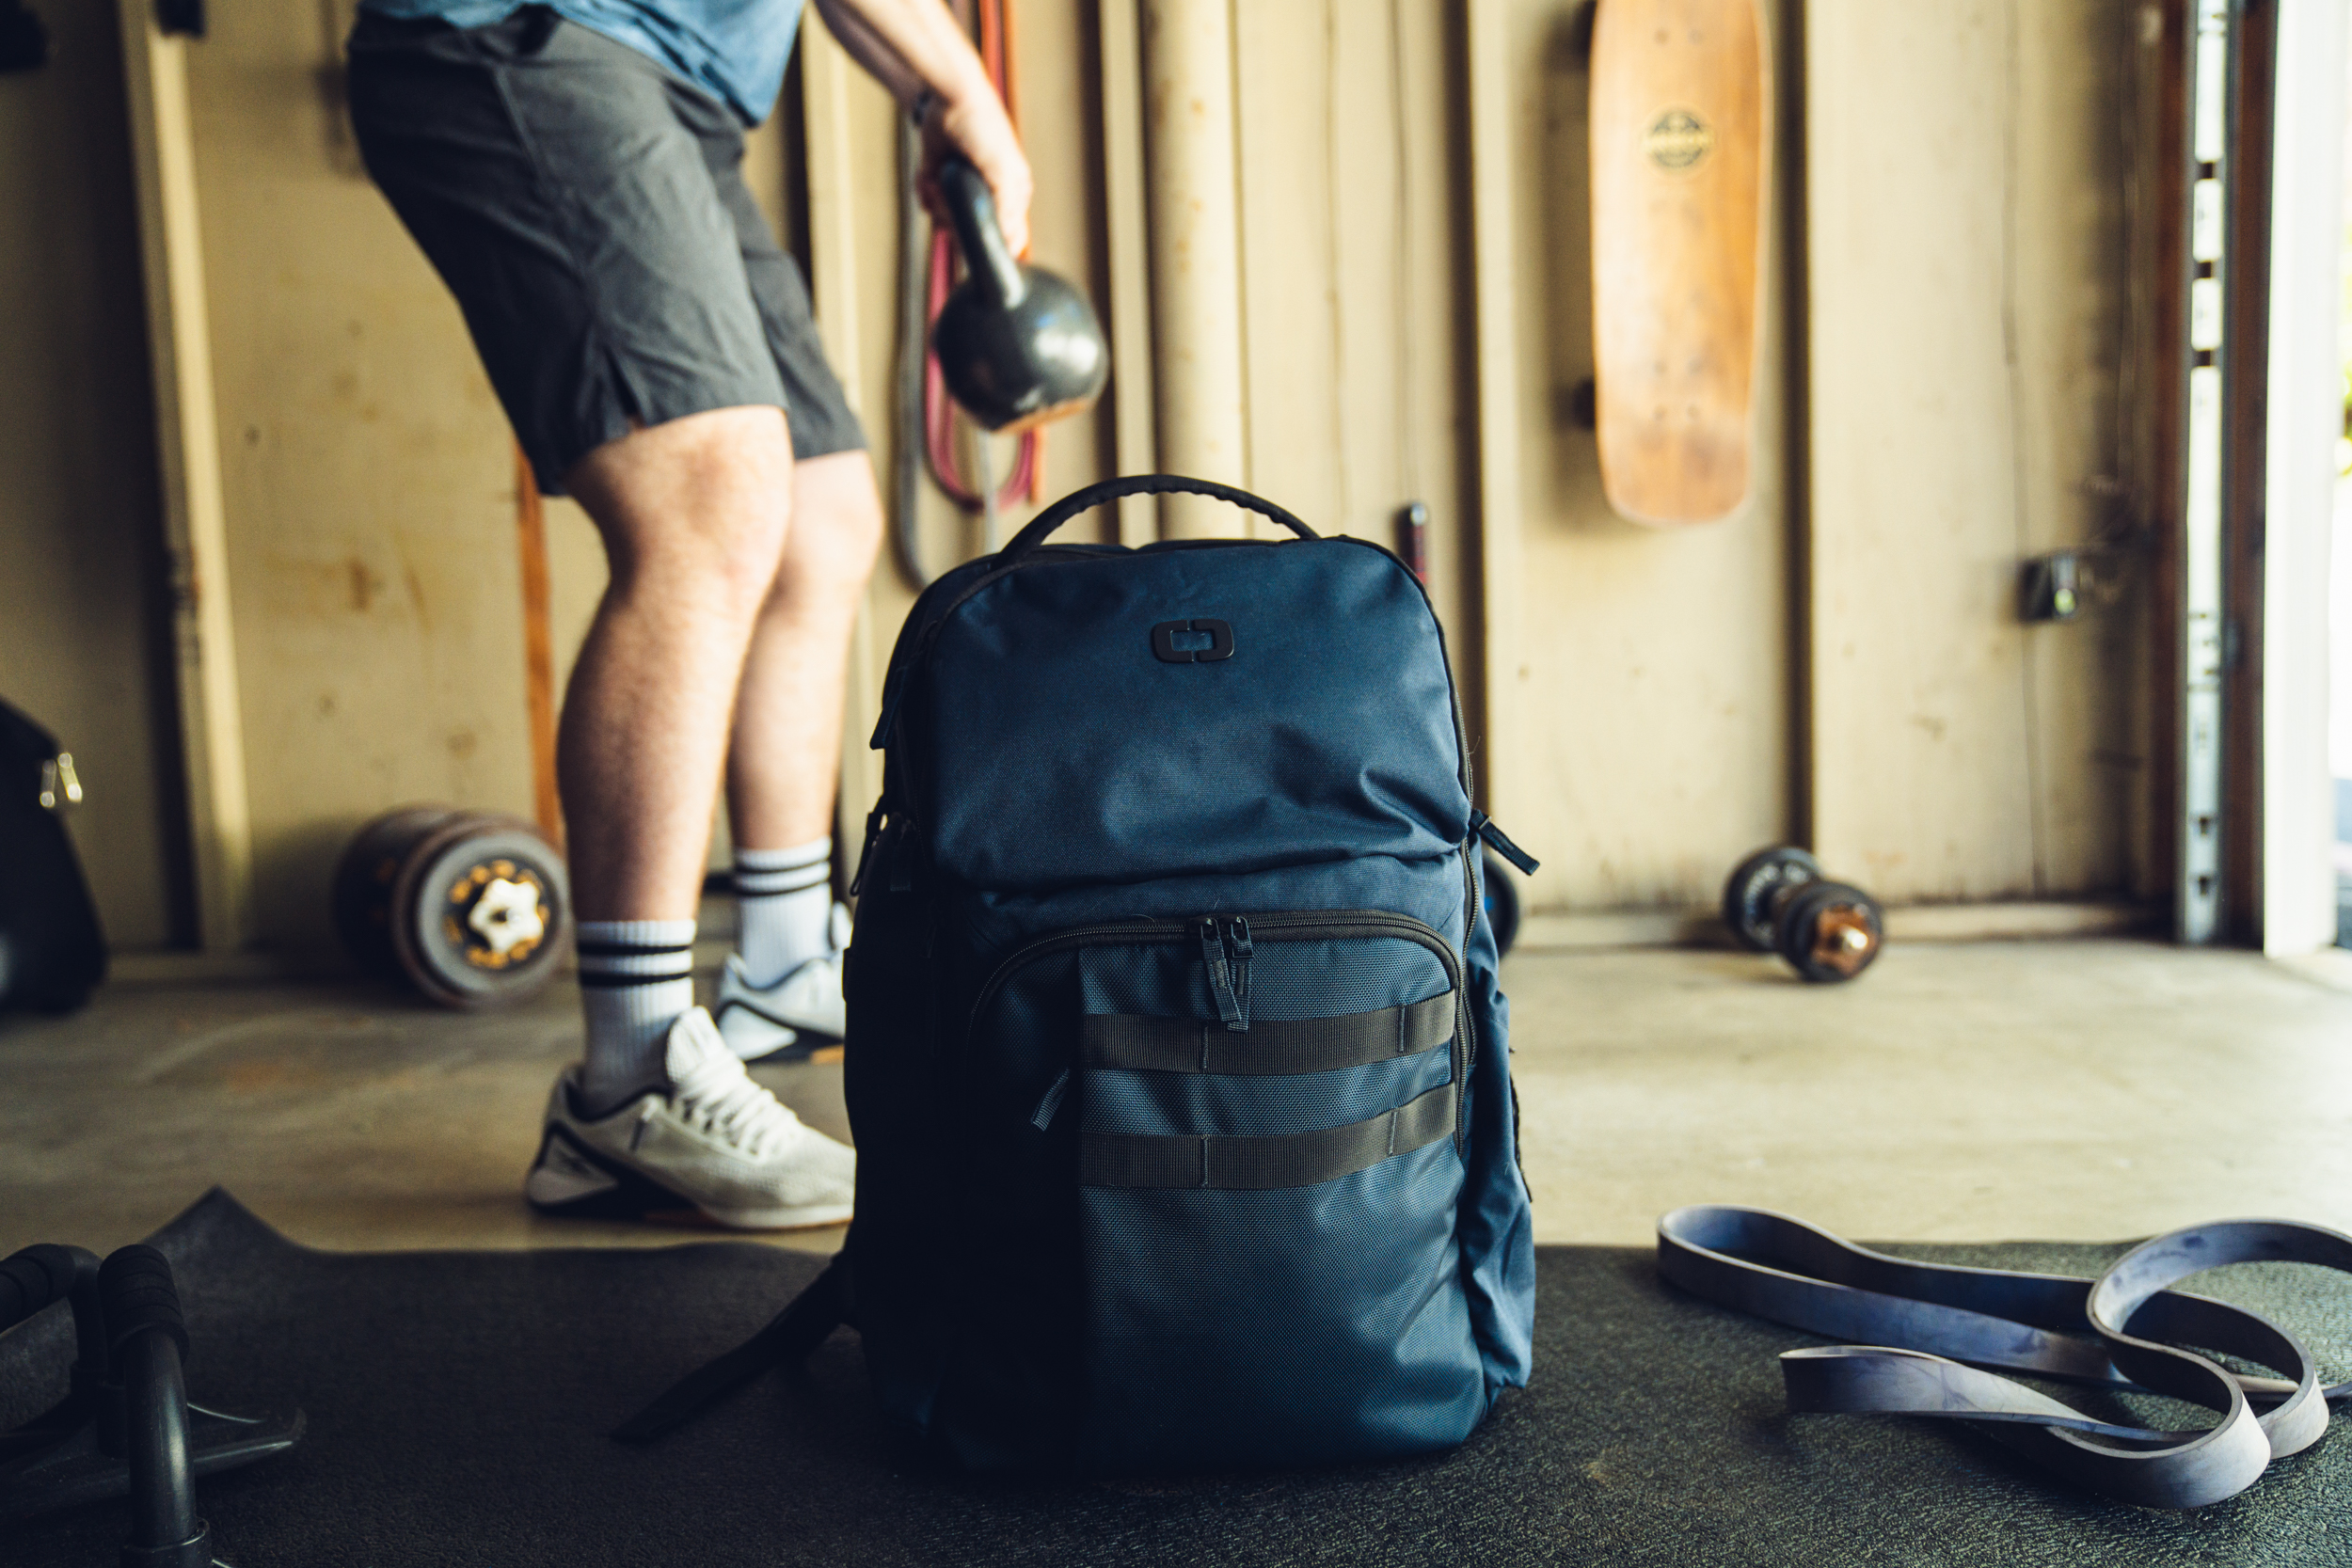 pace-pro-25-backpack-lifestyle-4